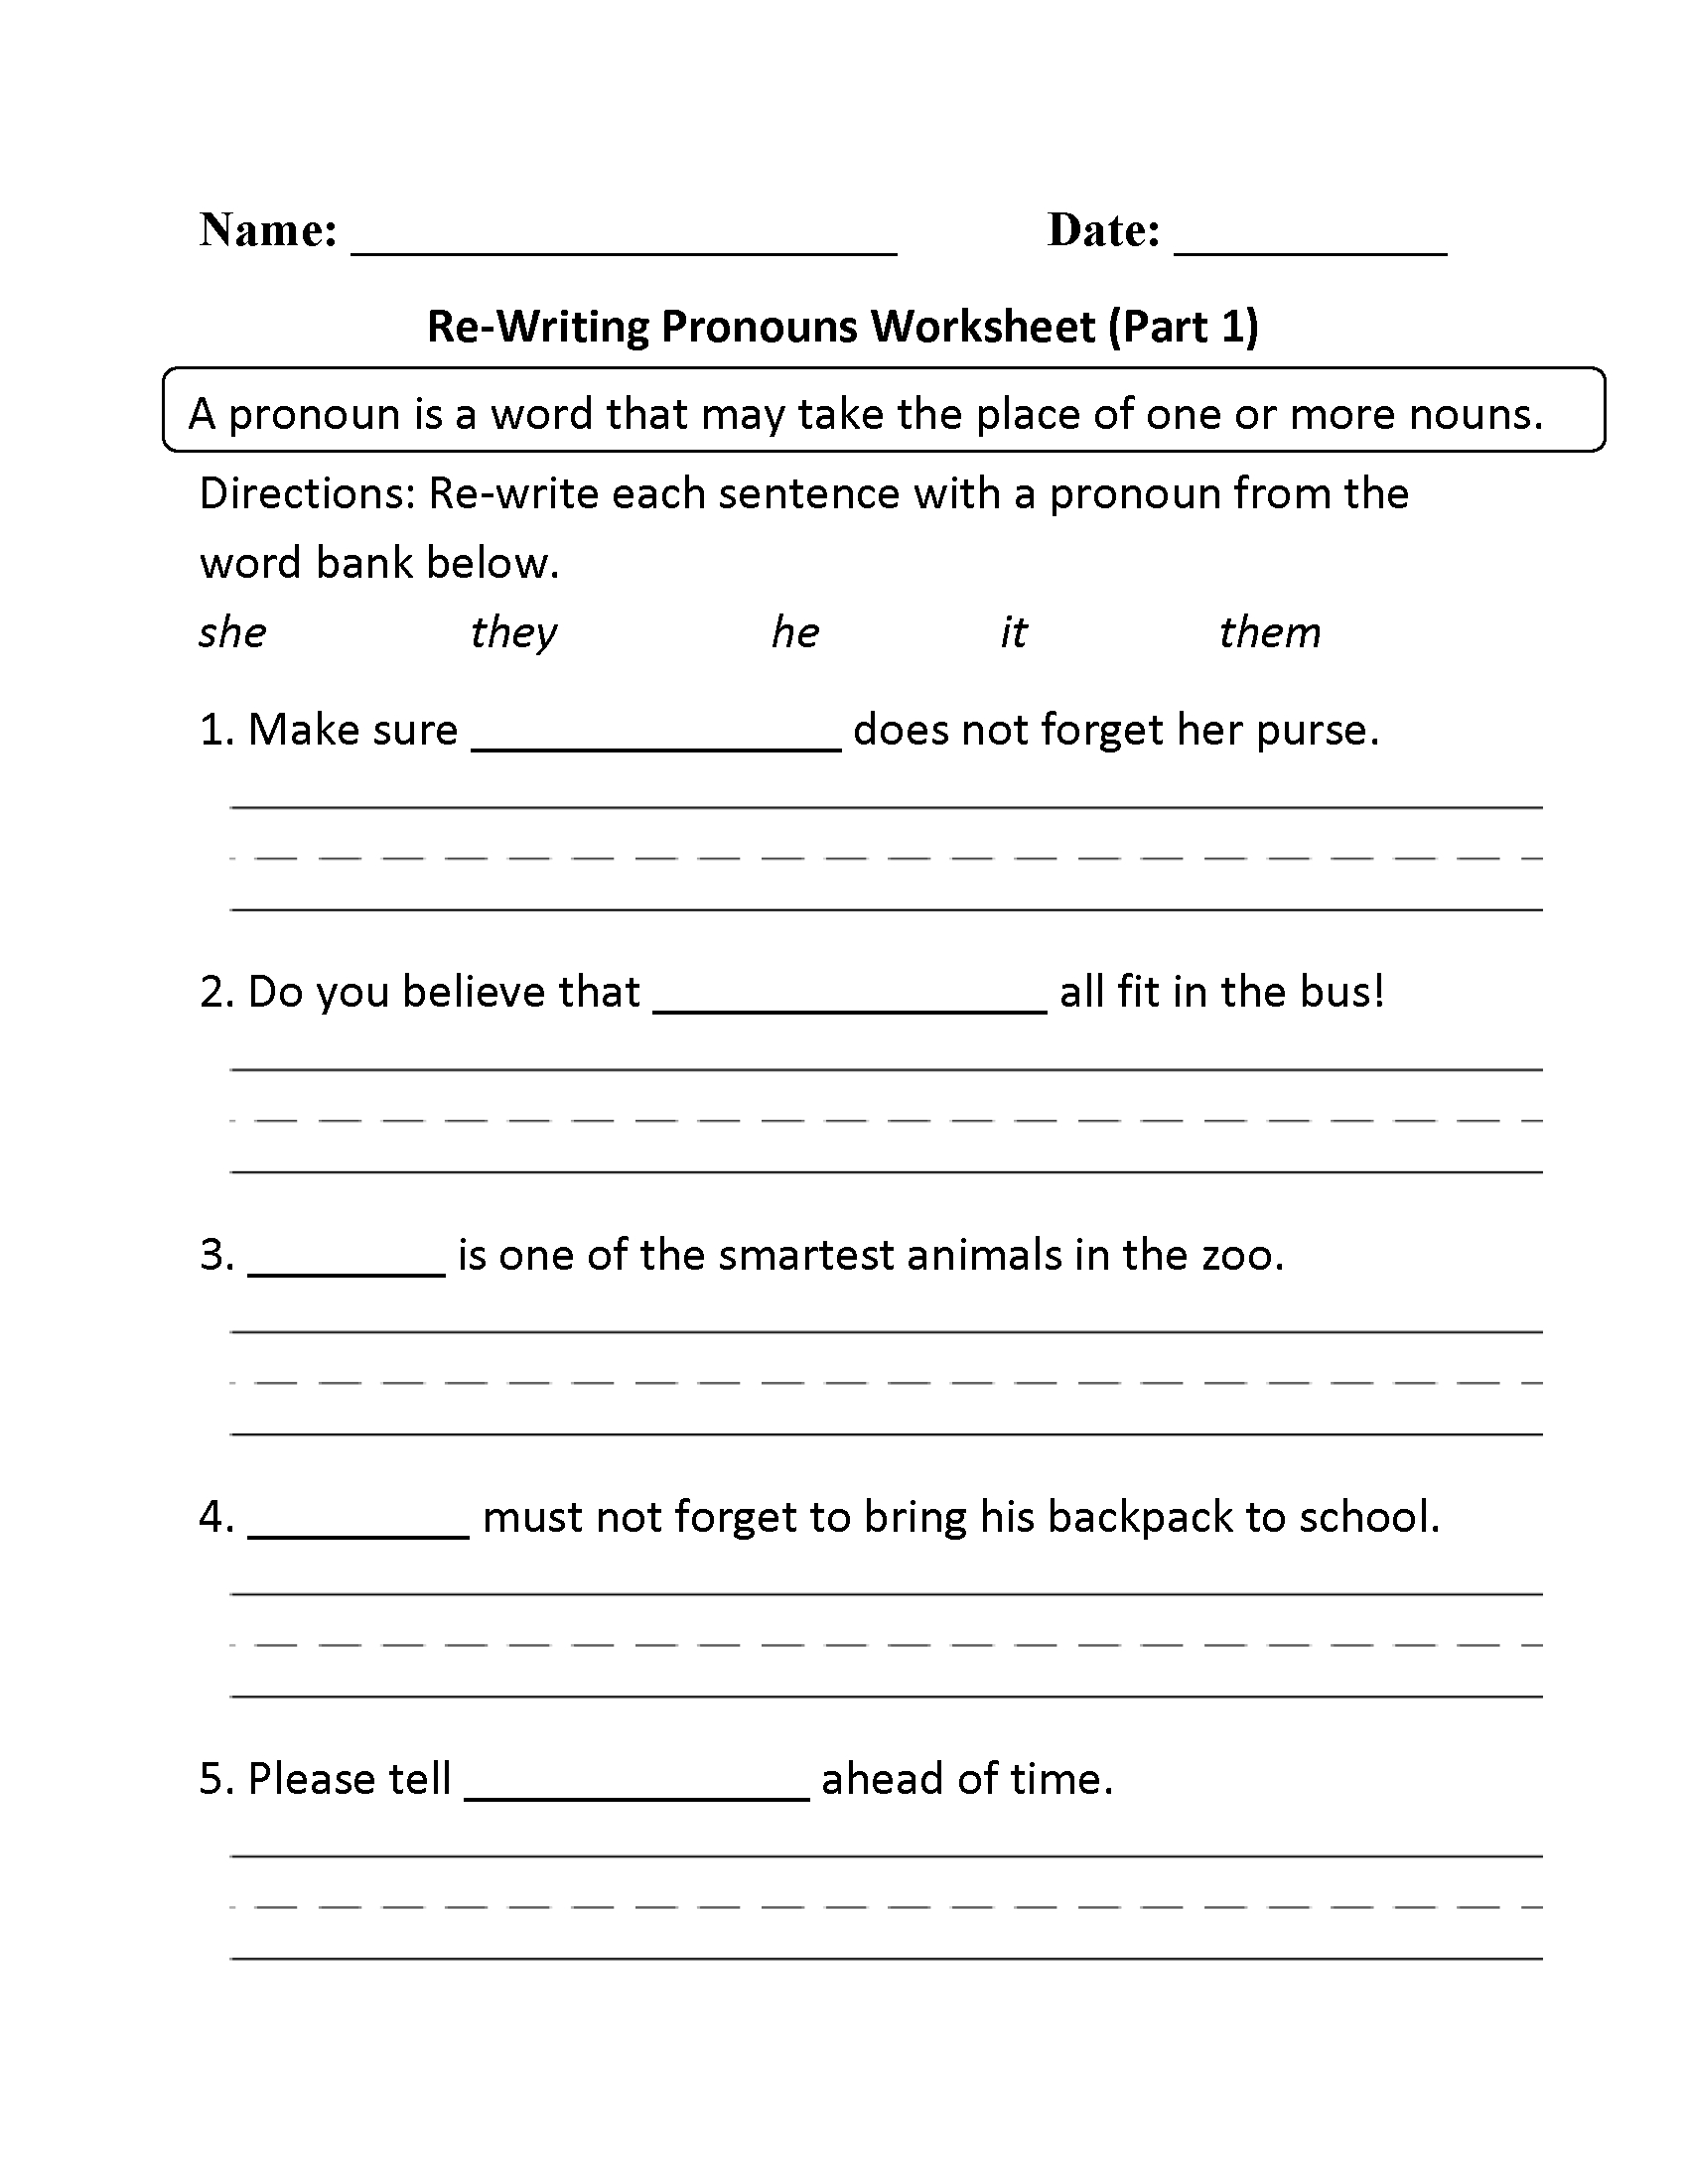 Pronouns Worksheets | Regular Pronouns Worksheets | Free Printable Pronoun Worksheets For 2Nd Grade